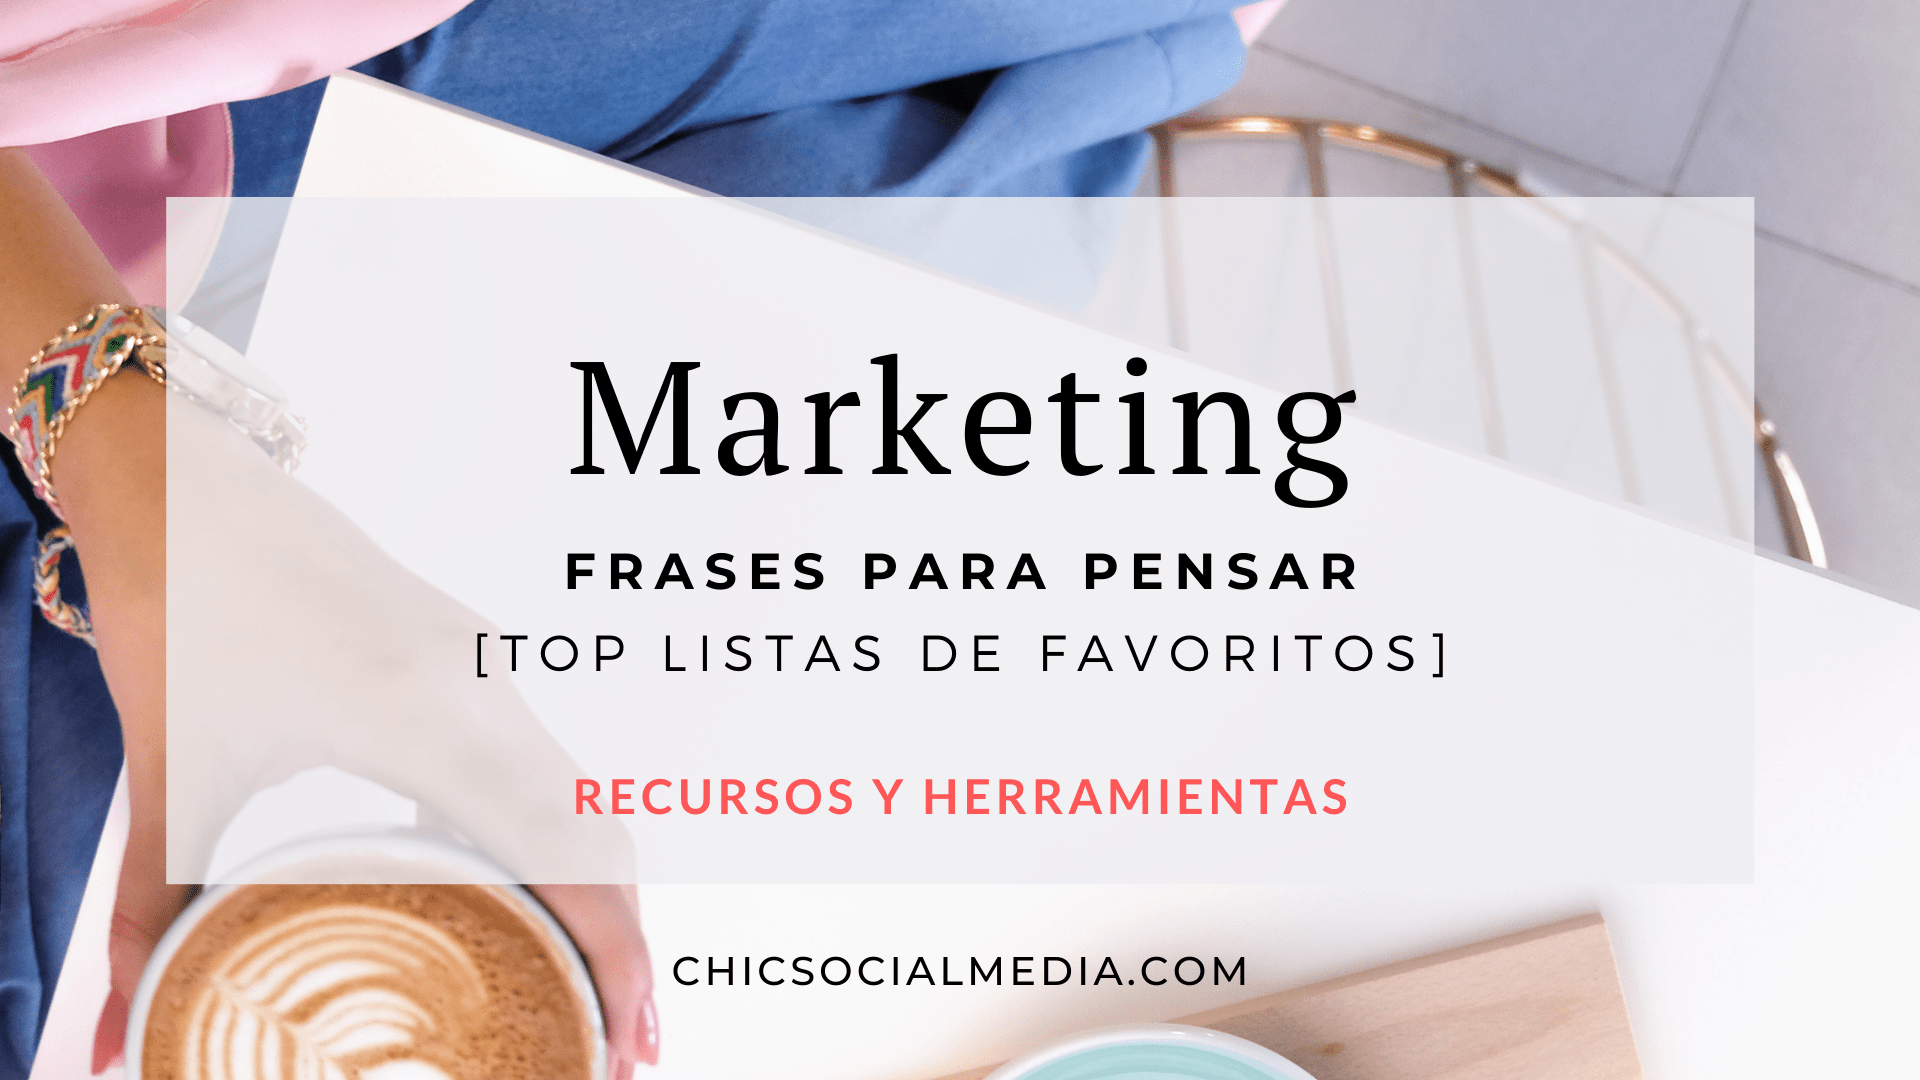 Chic Social Media Blog: Frases de Marketing